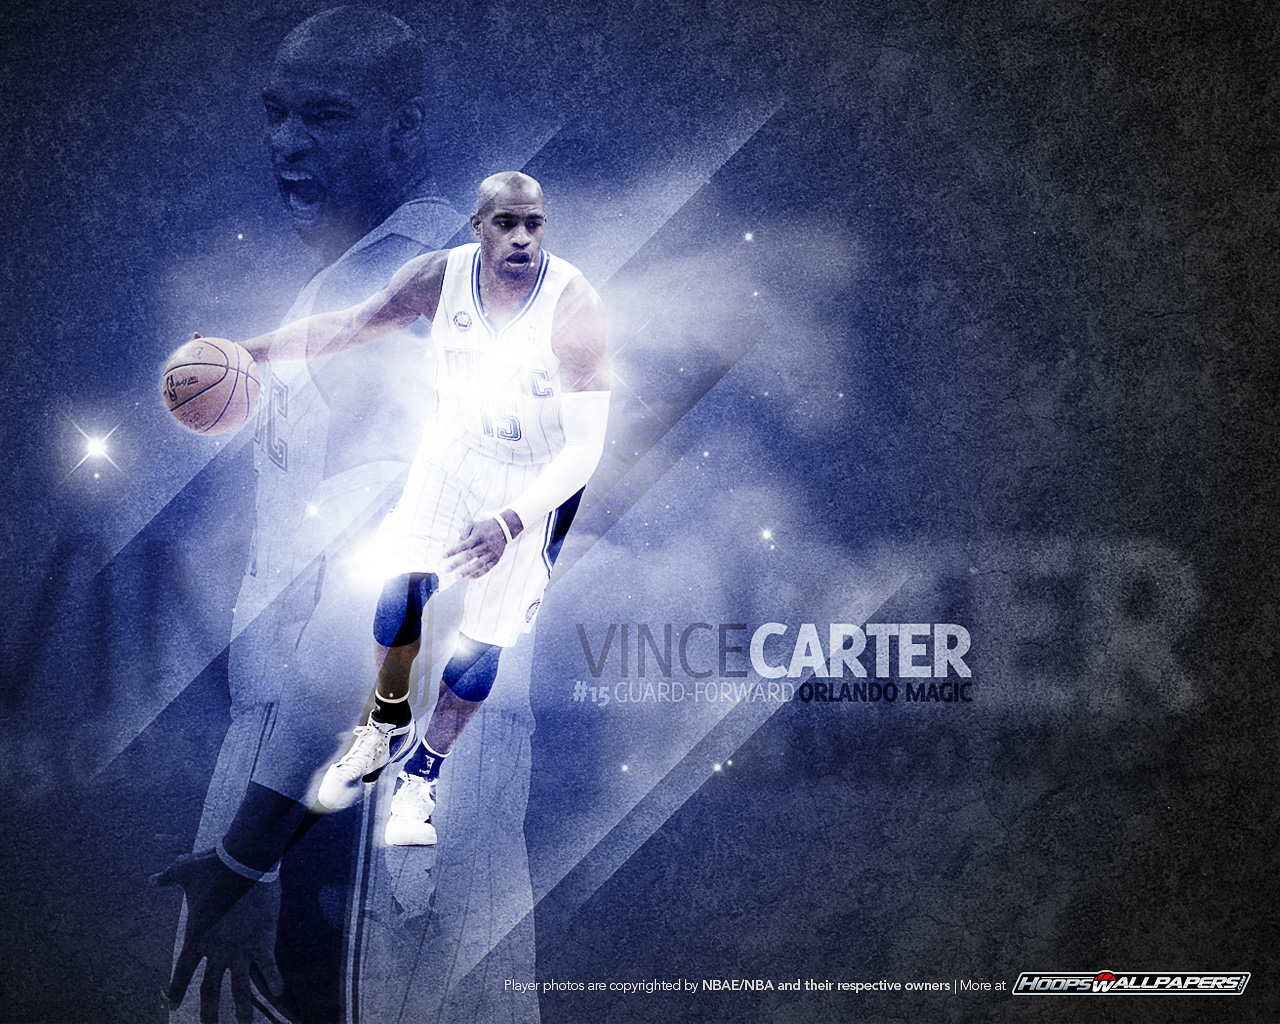 hoopswallpapers – get the latest hd and mobile nba wallpapers